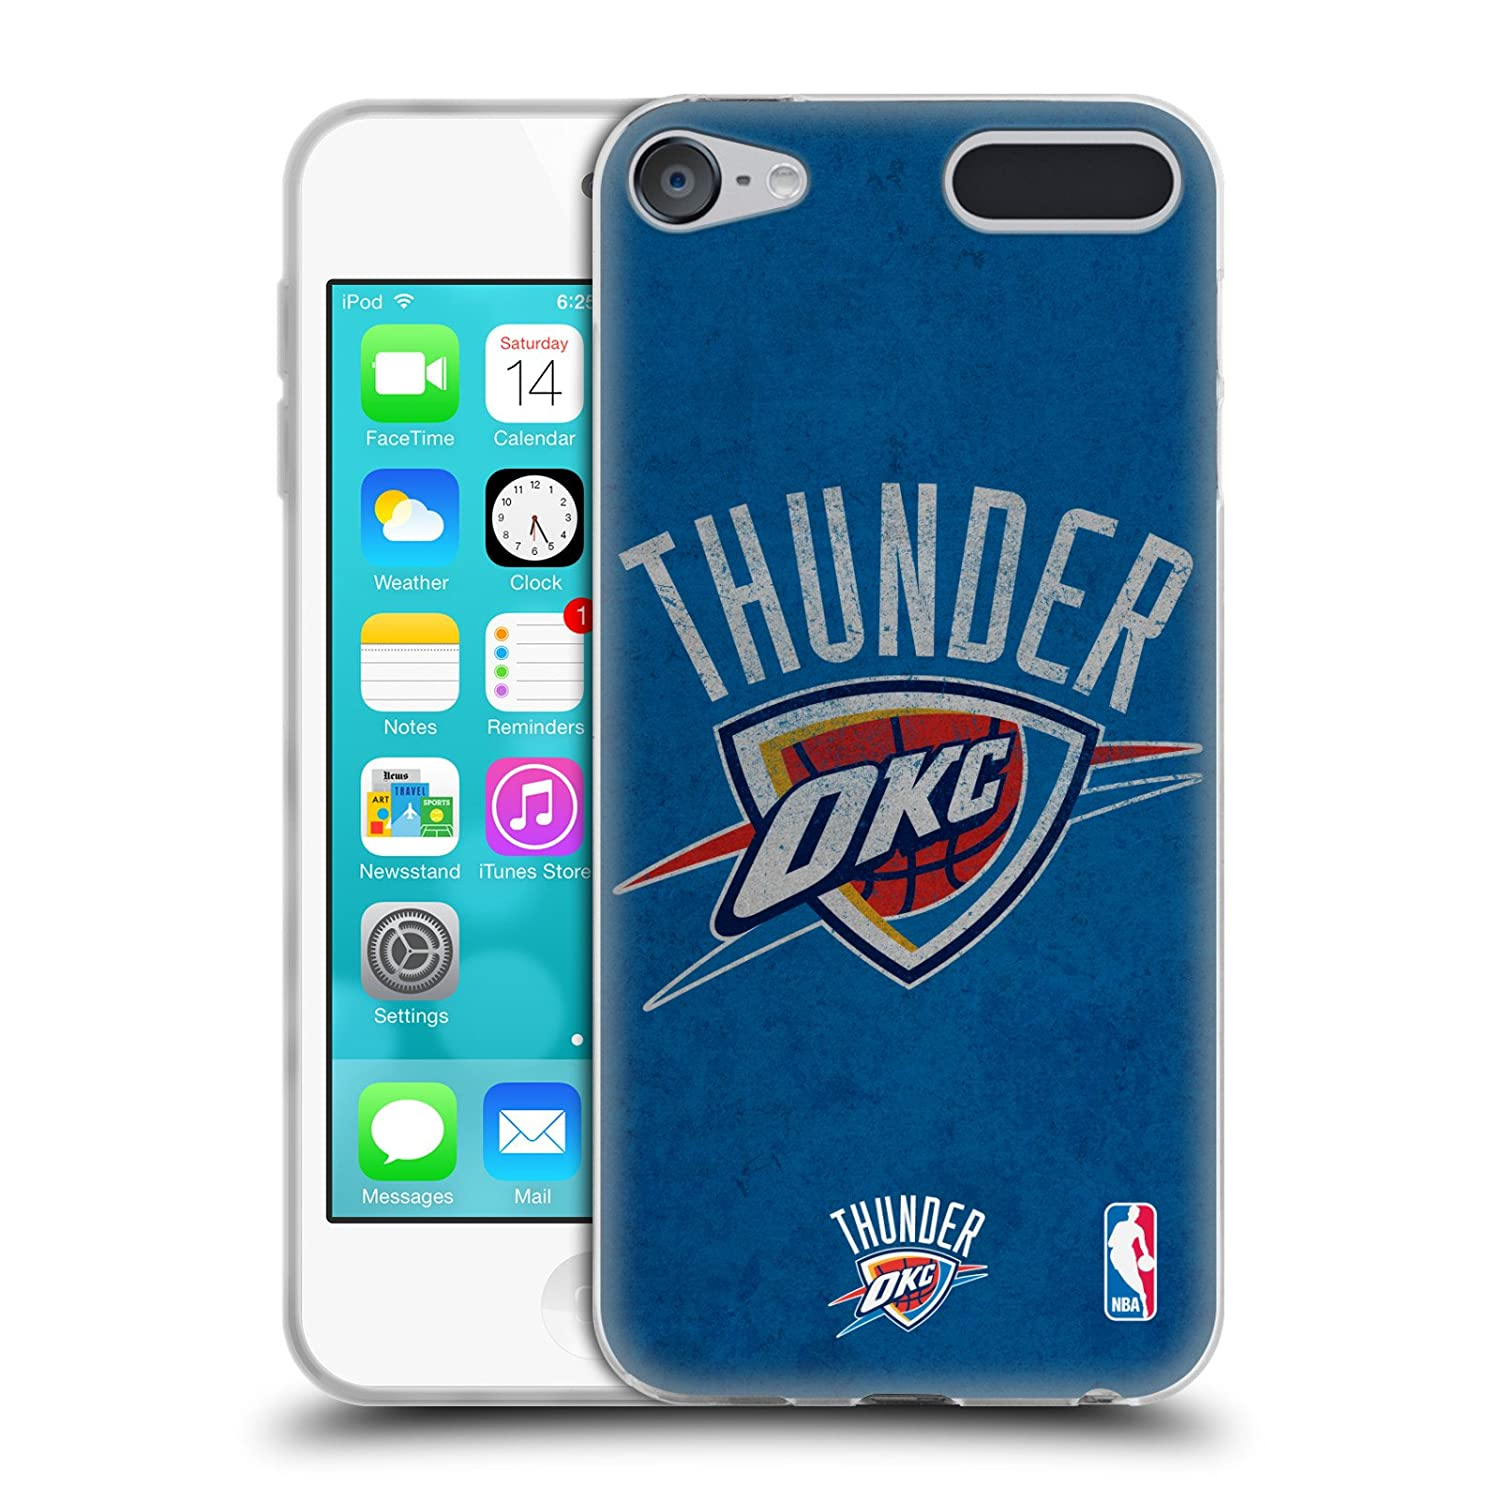 Official NBA Digital Camouflage Oklahoma City Thunder Soft Gel Case for Apple iPod Touch 6G 6th Gen Head Case Designs HTPCR-TOUCH6G-NBAOKL-DIG